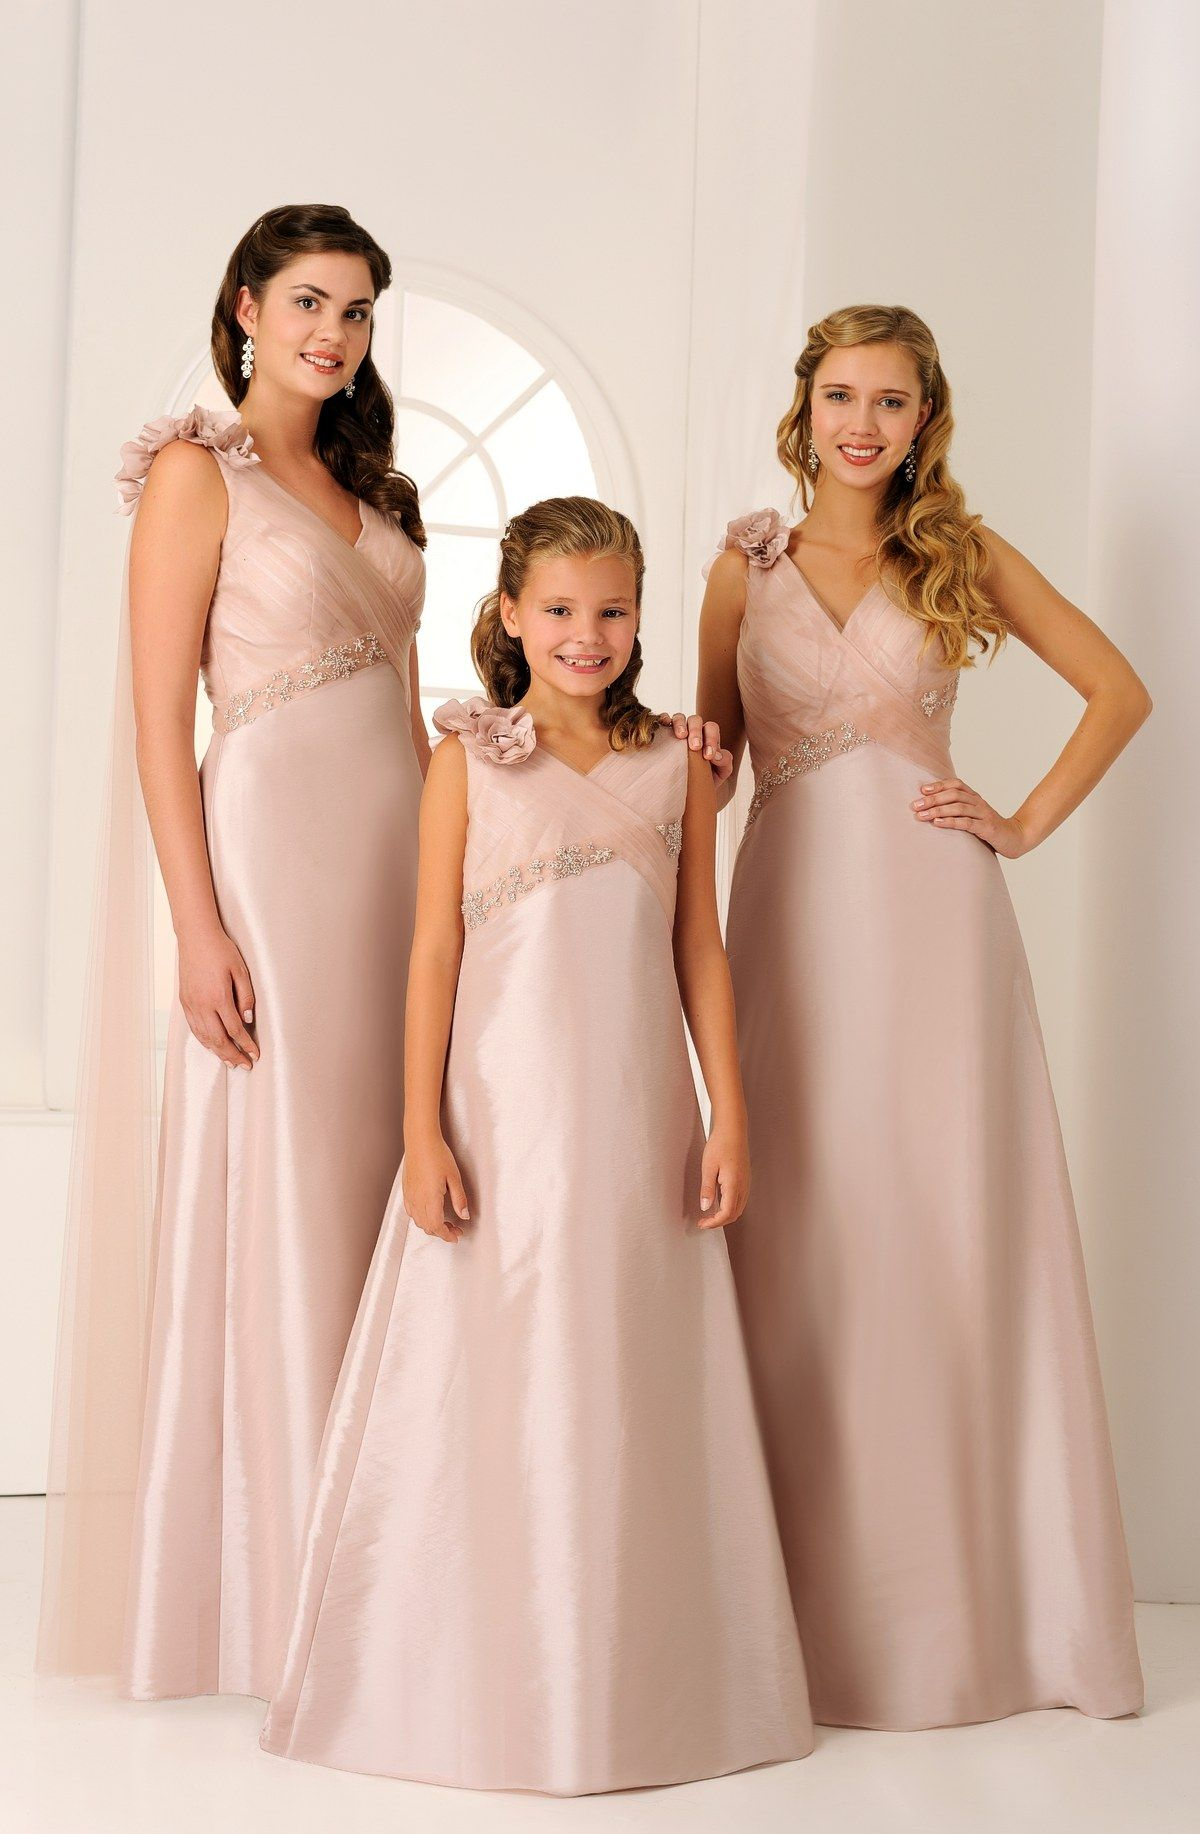 Vrb71256 adult bridesmaid vrf81254 teen maid and flower girl adult bridesmaid teen maid and flower girl gown samples available in store ombrellifo Gallery